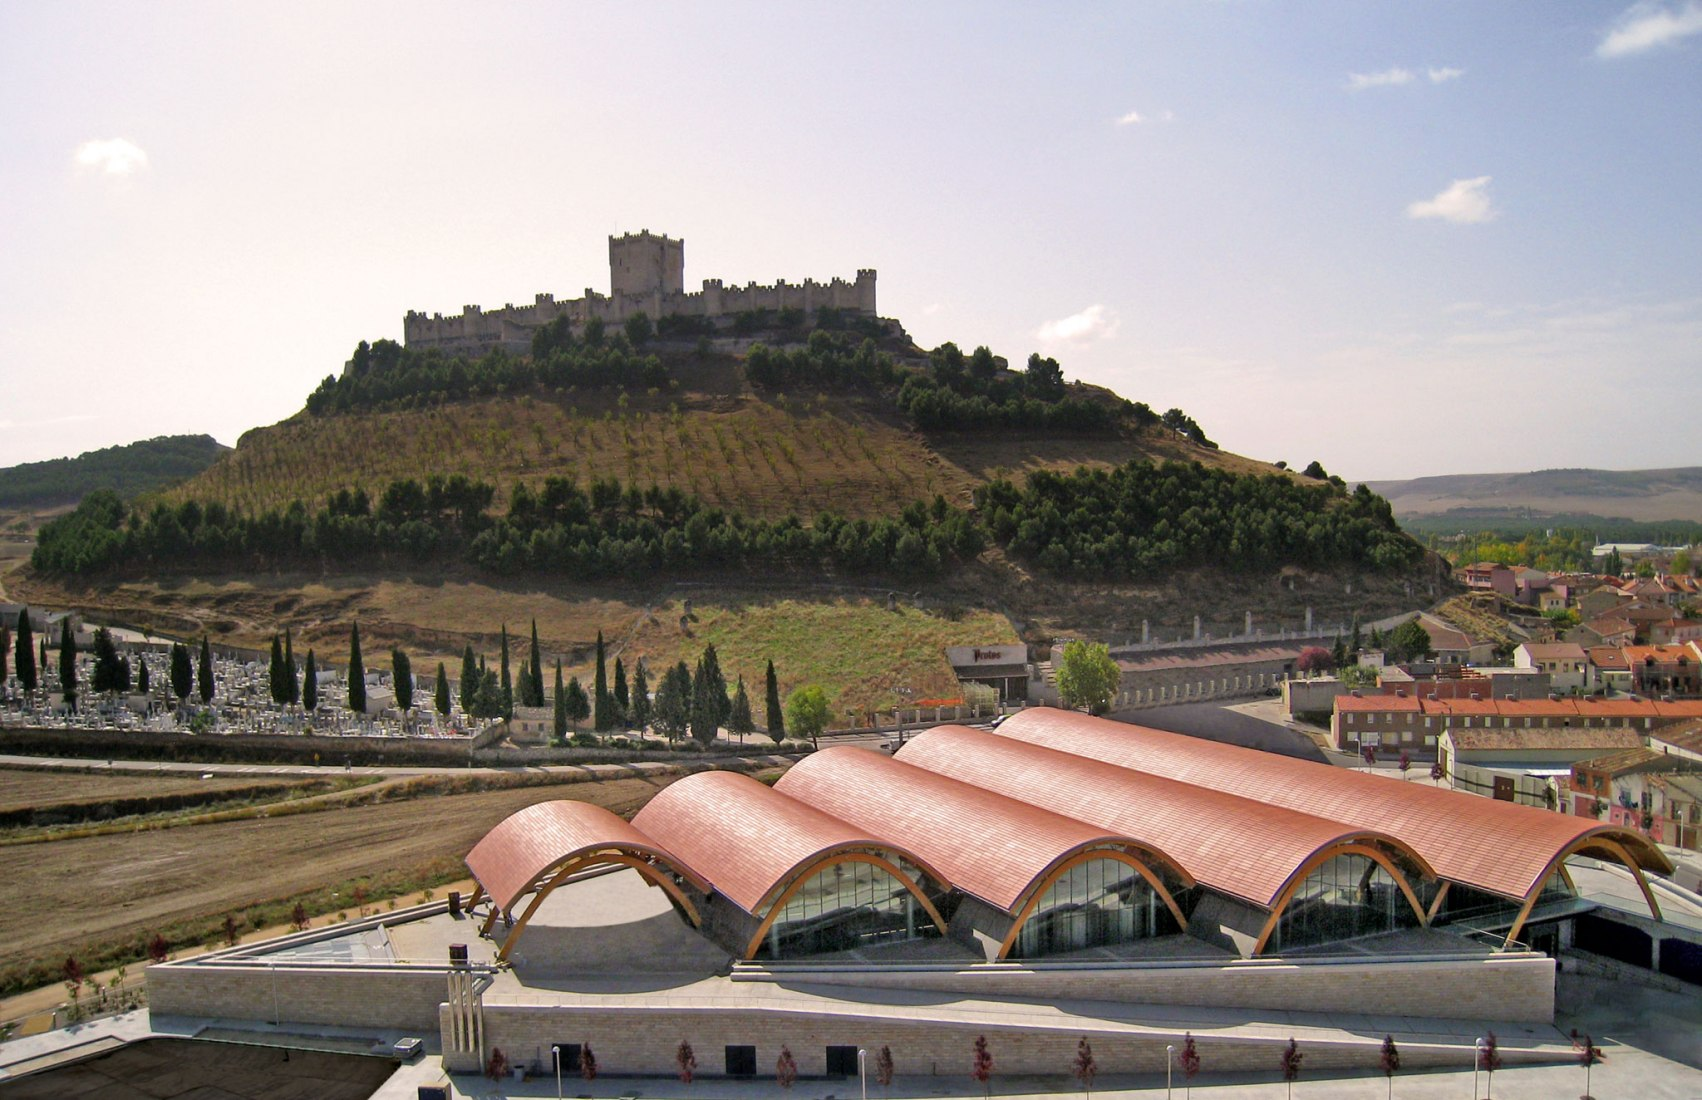 Aerial view - looking towards the castle. Photograph Bodegas Protos. Copyright holder Bodegas Protos